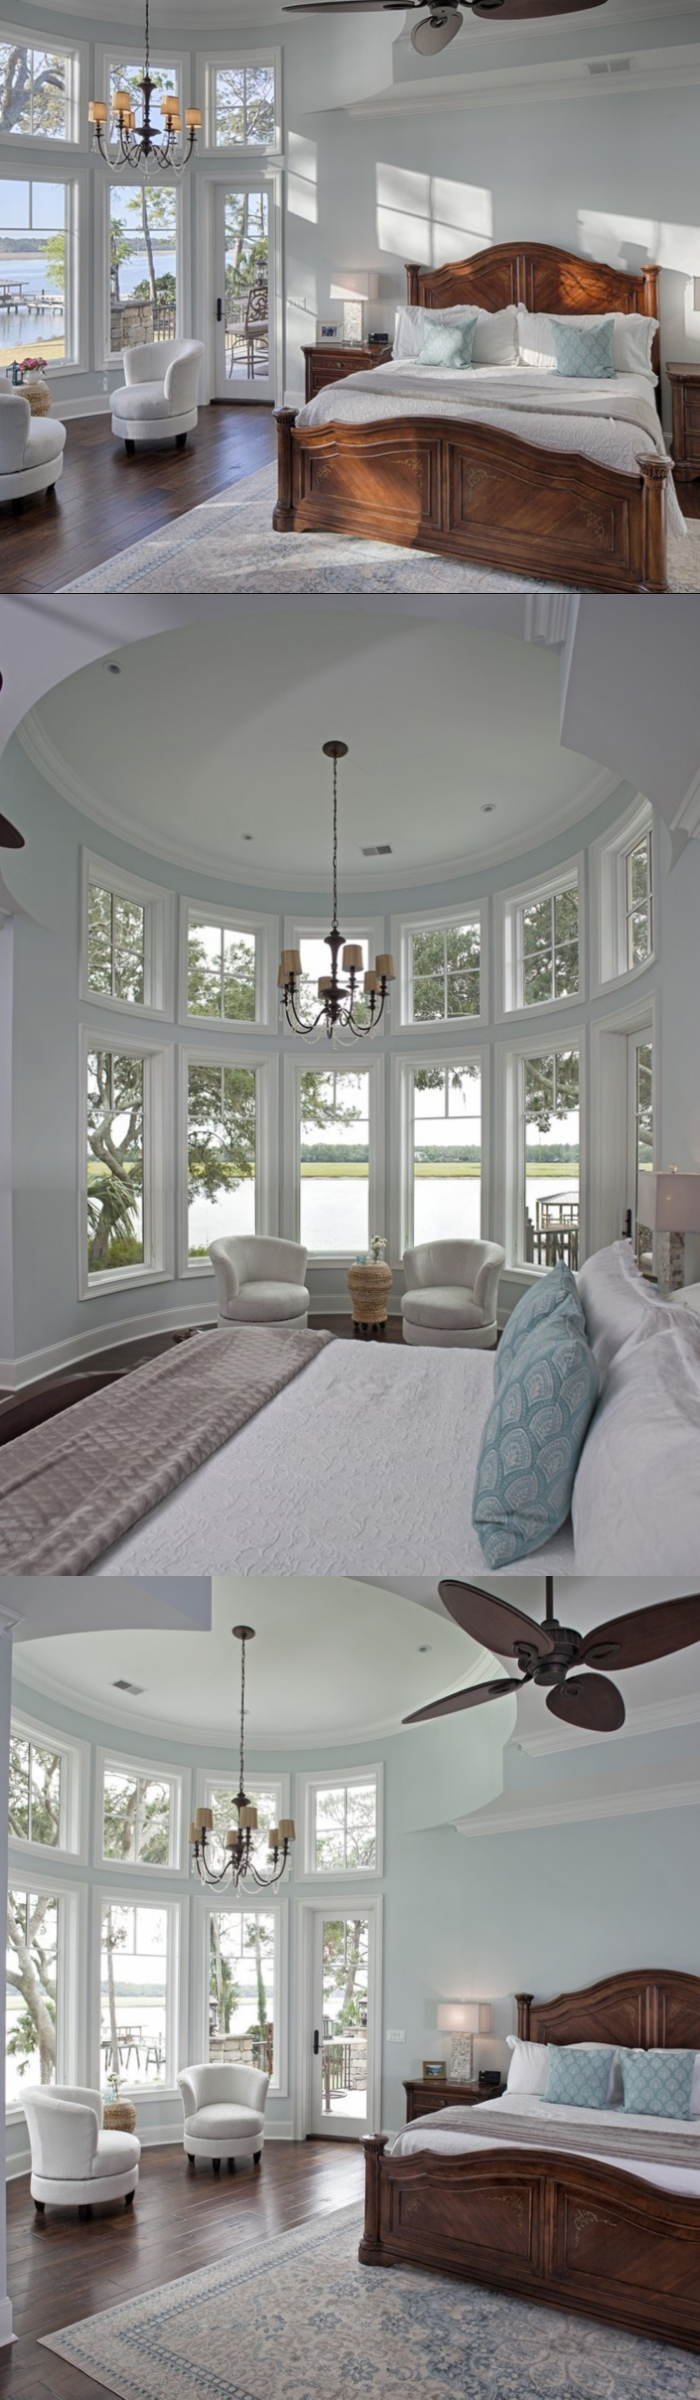 Traditional Bay Window Bedroom